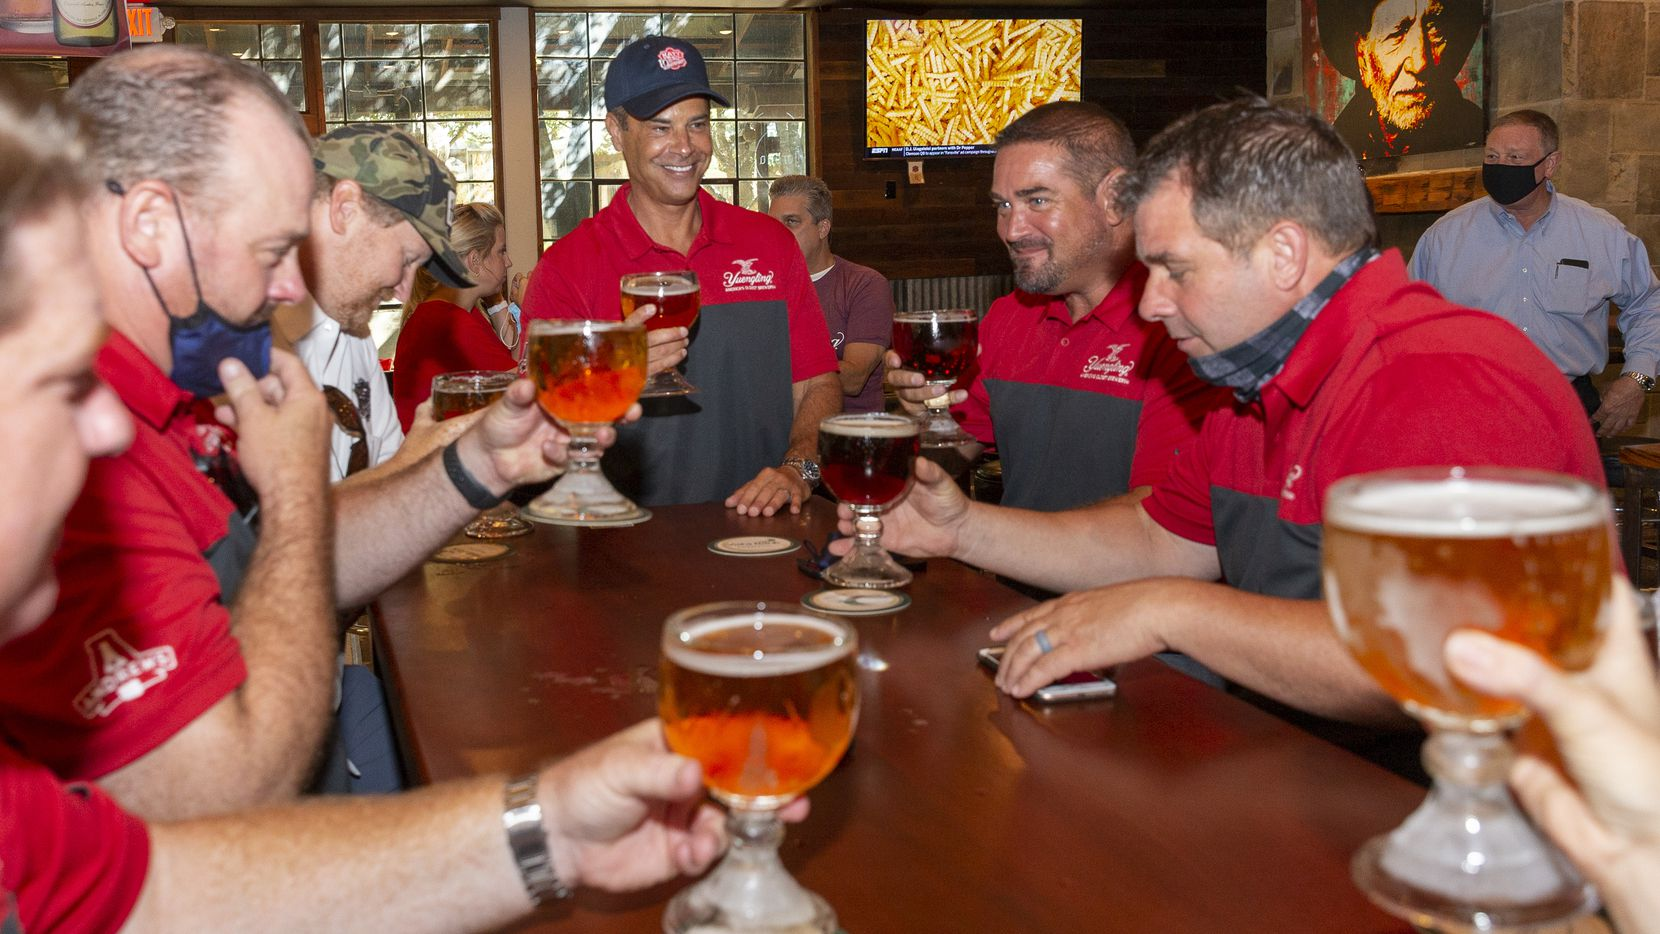 Andrews Distributing CEO Mike McGuire (center) toasts a glass of Yuengling with Andrews Distributing employees at Katy Trail Ice House on Wednesday, Aug. 11, 2021, in Dallas. Katy Trail Ice House is the first establishment to serve Yuengling in Texas. They poured beers bright and early, at 10 a.m.